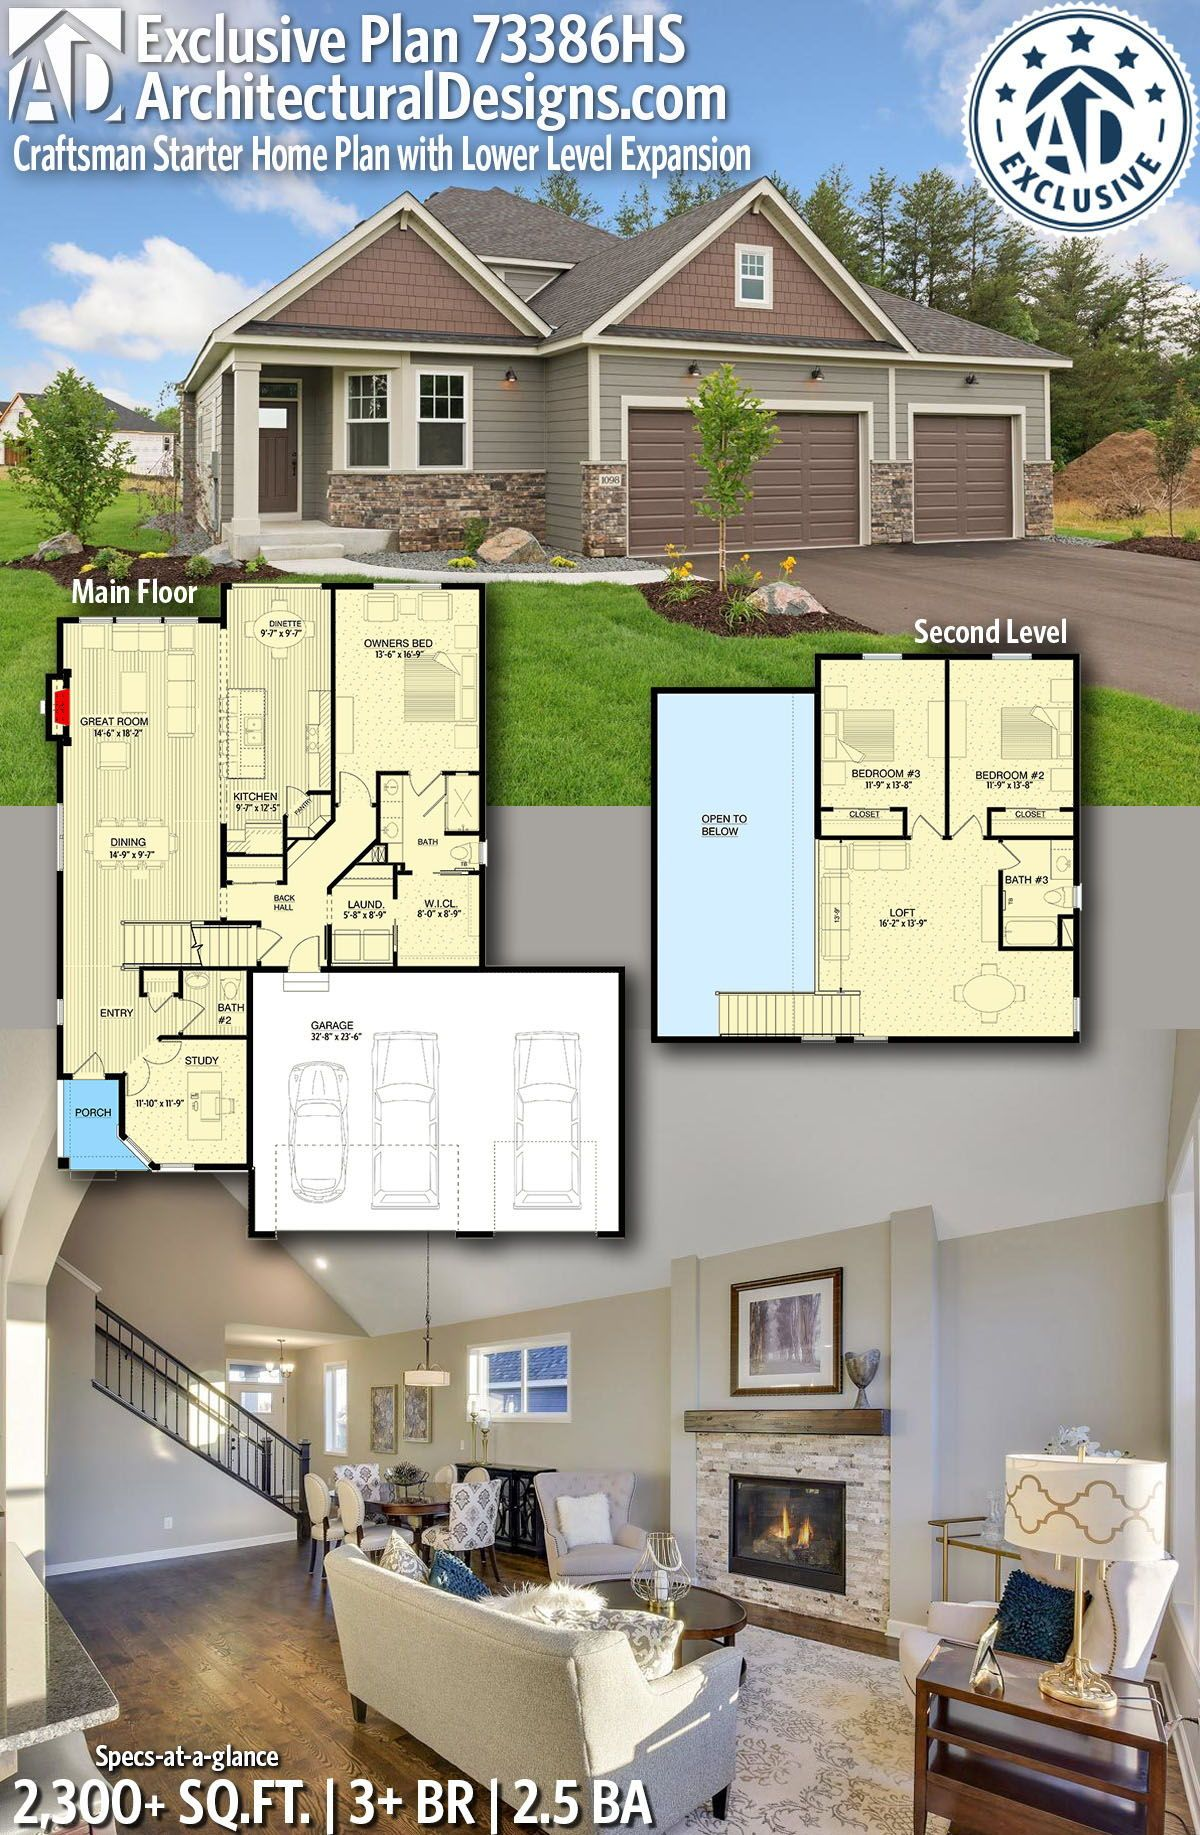 Architectural designs exclusive house plan hs gives you bedrooms baths and sq ft ready when are where do want to build also rh pinterest